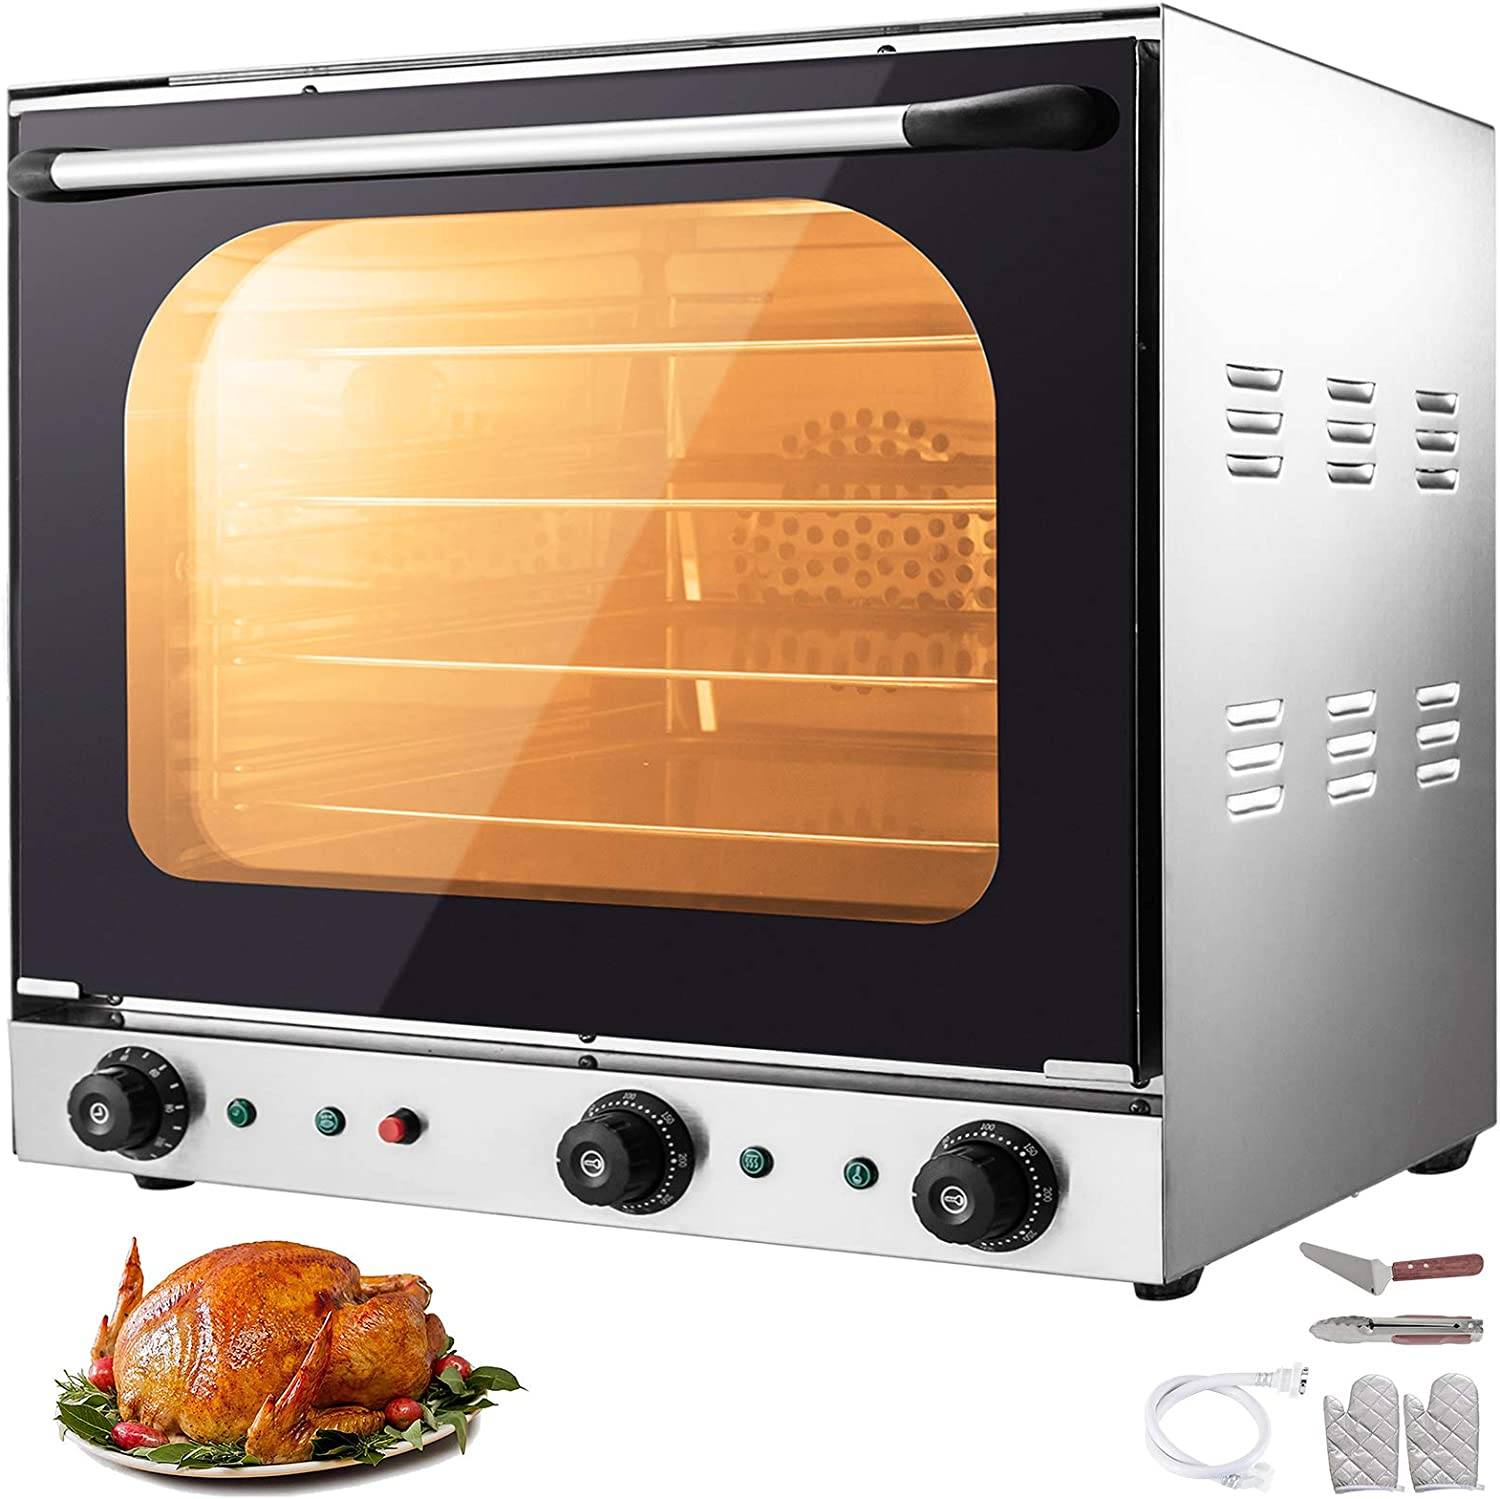 VBENLEM 110V Commercial Convection Oven 60L/2.12 Cu.ft Capacity 2600W Electric Toaster Oven 50-350℃ Multifunction Oven 4-Tier with Spray Function Perfect for Roasting Baking Drying Steaming Defrosting